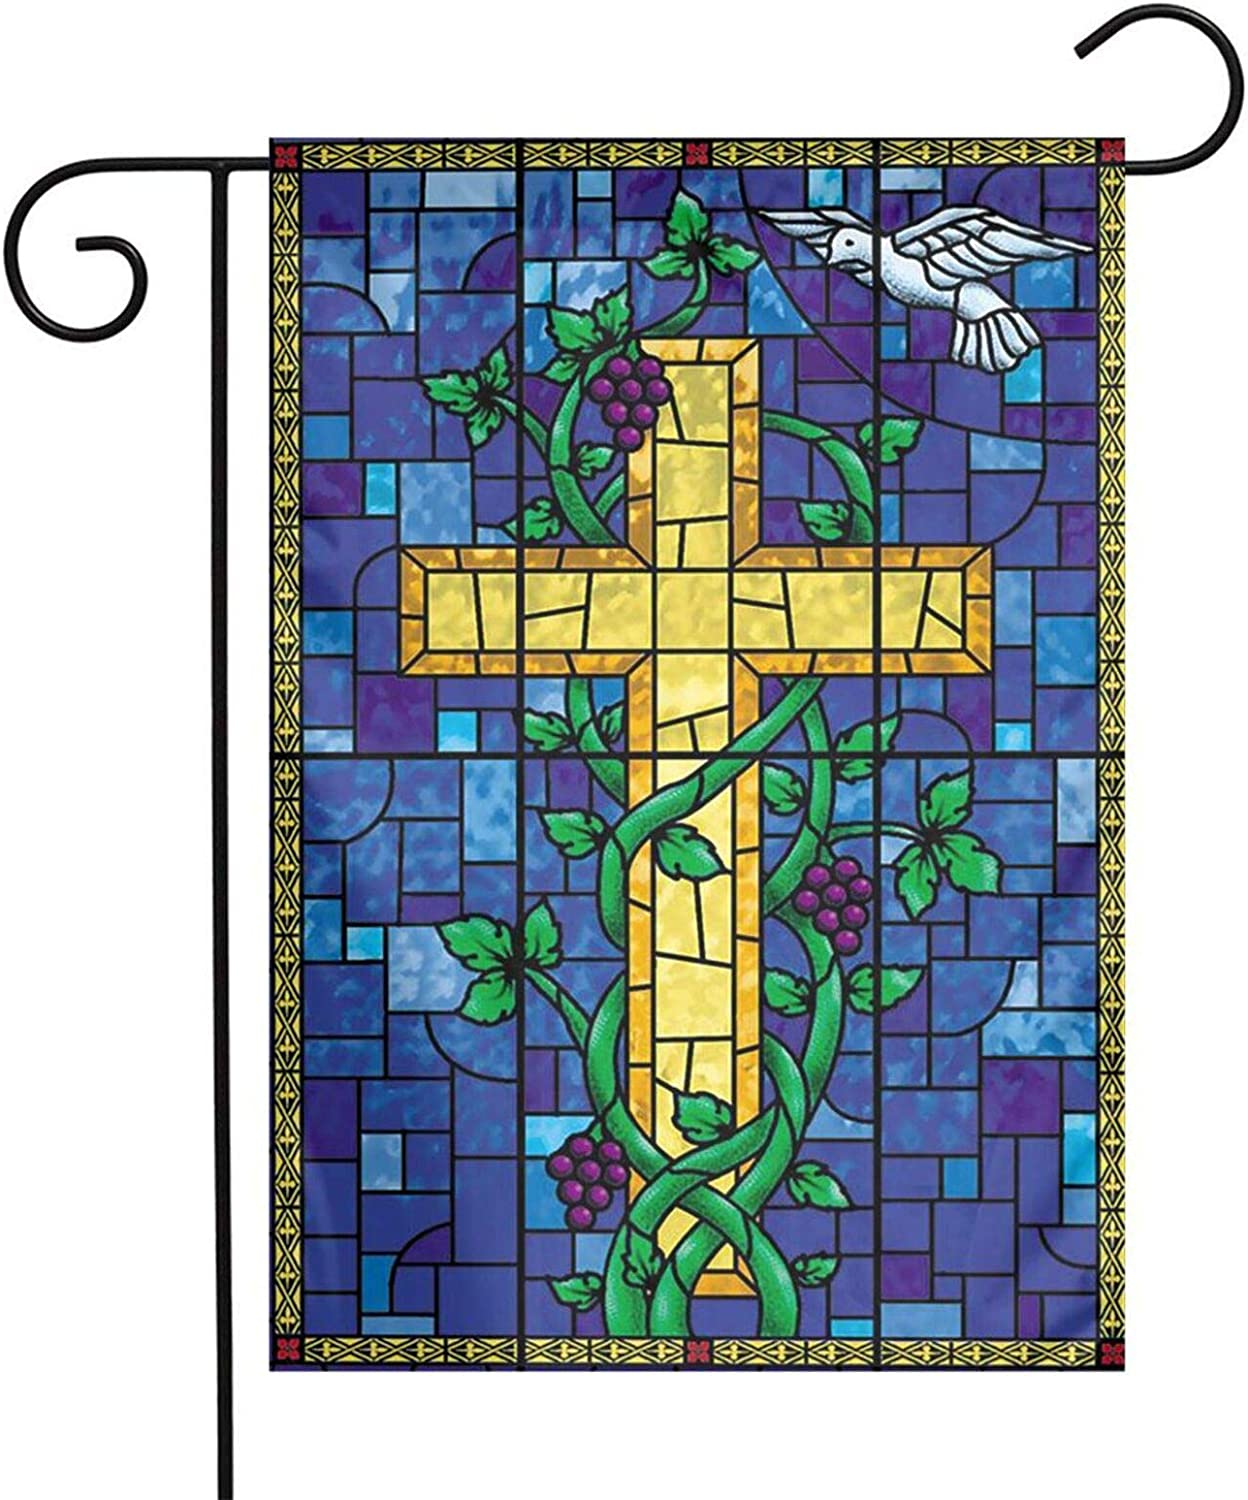 AIJEESI Jesus Christ Cross Religious Stained Glass Style 12 x18 Inch Floral Garden Yard Flag, Jesus Christ Cross Religious Stained Glass Style Banner for Home Decorative House Yard Sign